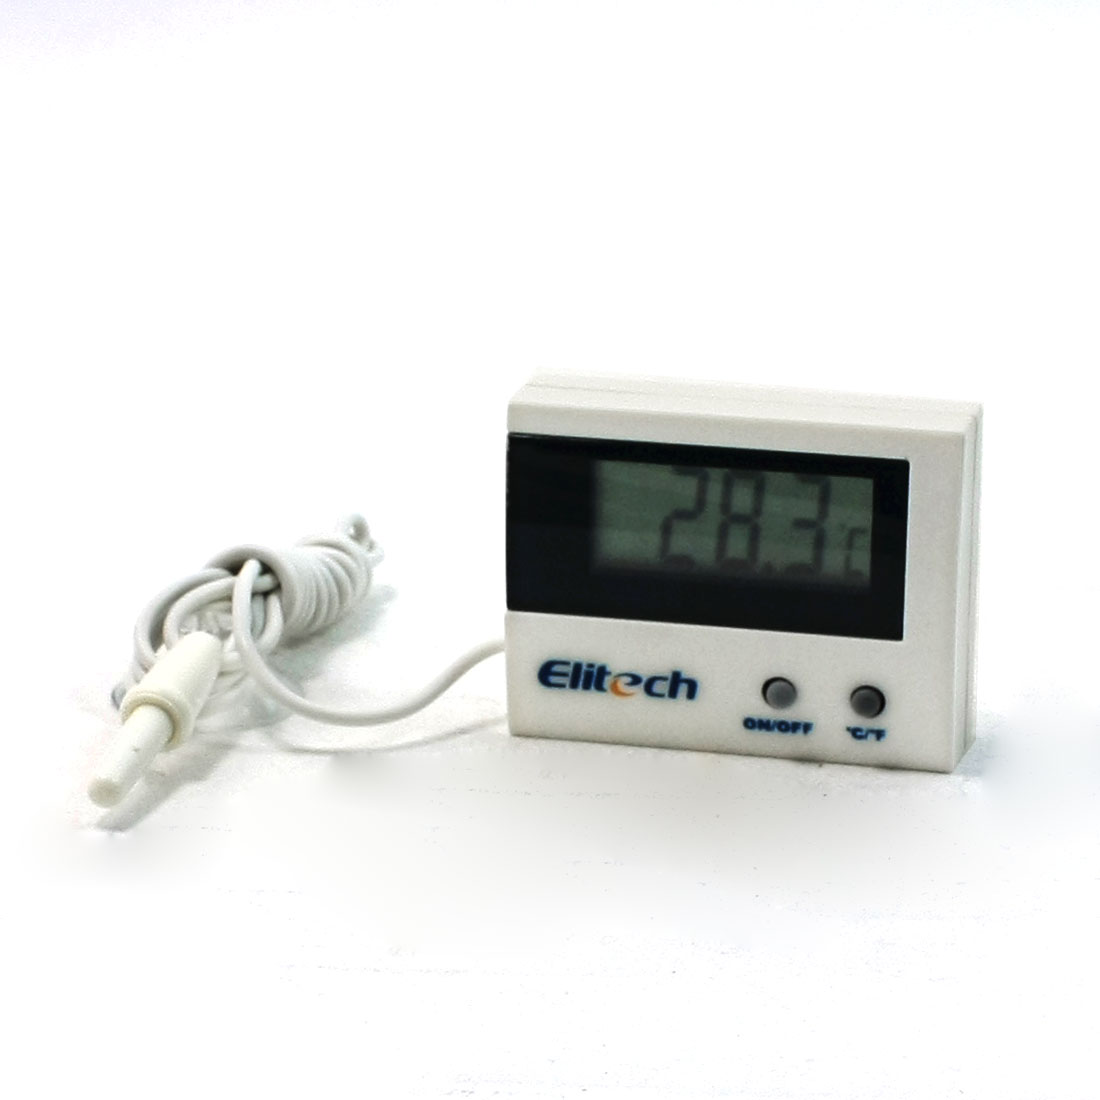 Termperature Probe LCD Display Digital Thermometer w 3.3Ft Long Cable